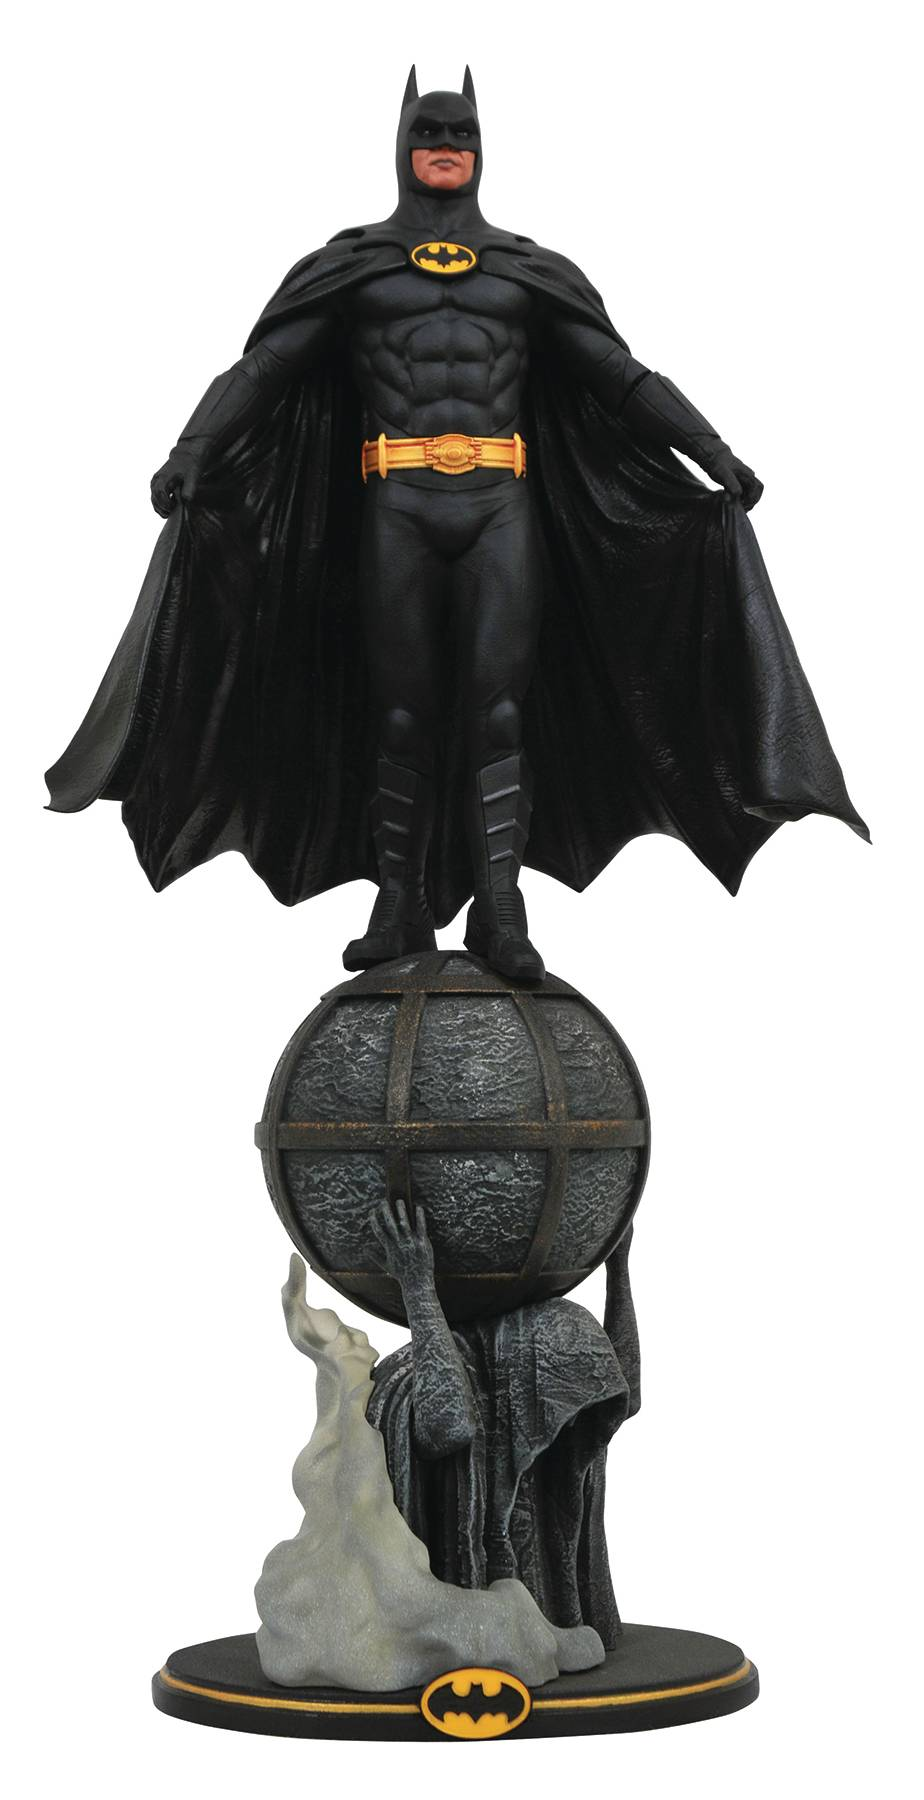 DC GALLERY BATMAN 1989 MOVIE PVC STATUE